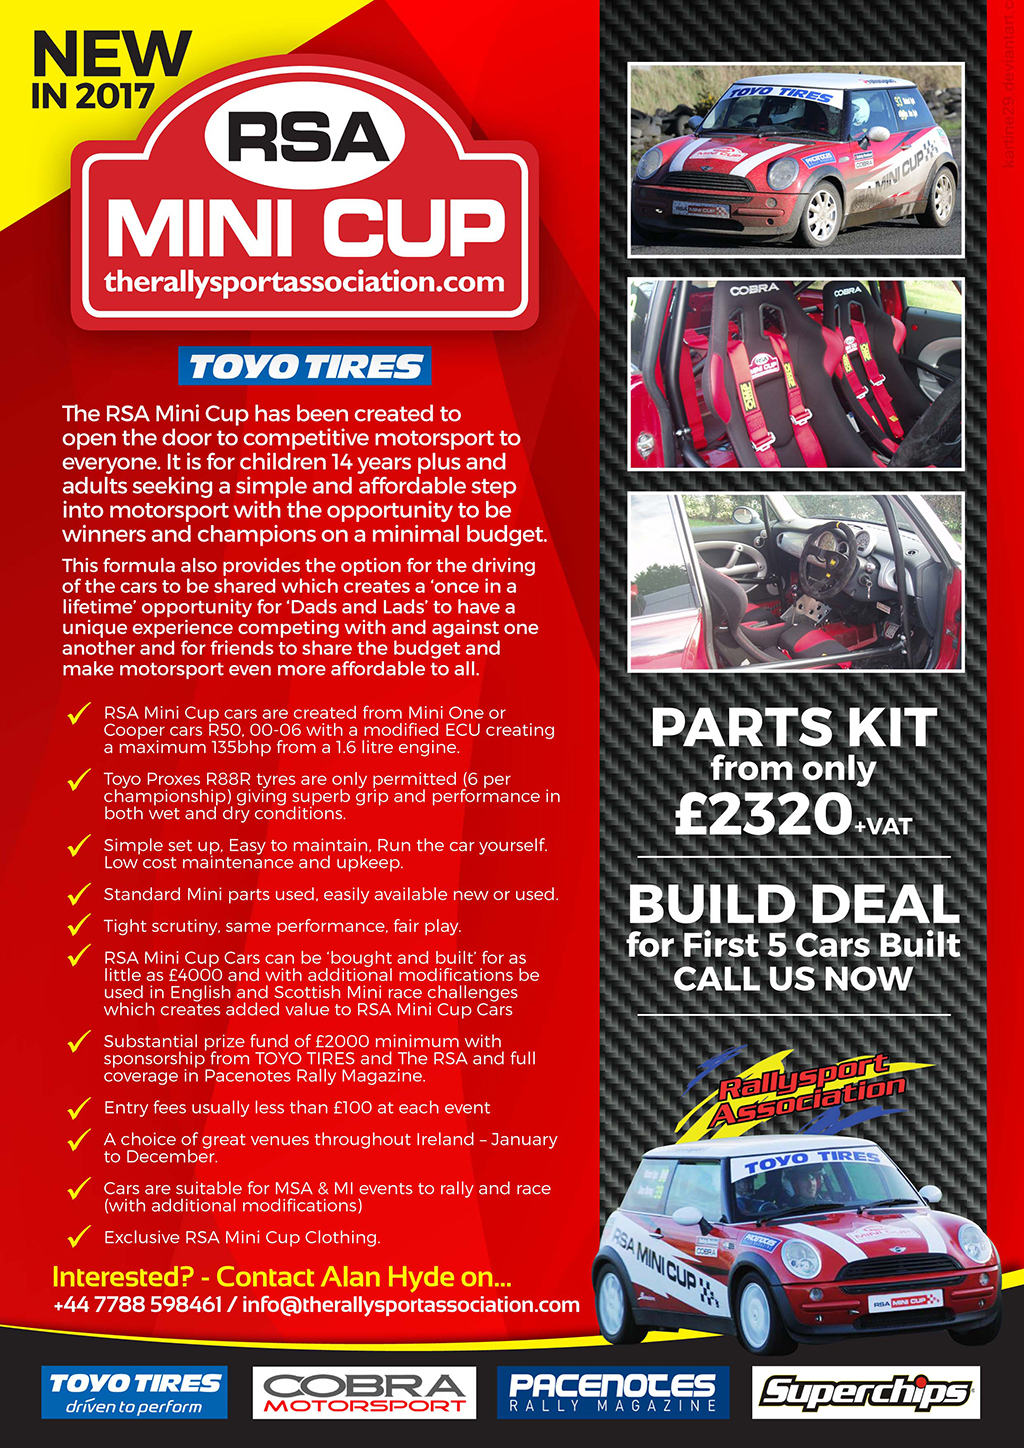 The RSA Mini Cup event details and entry information. The Rallysport Association Northern Ireland